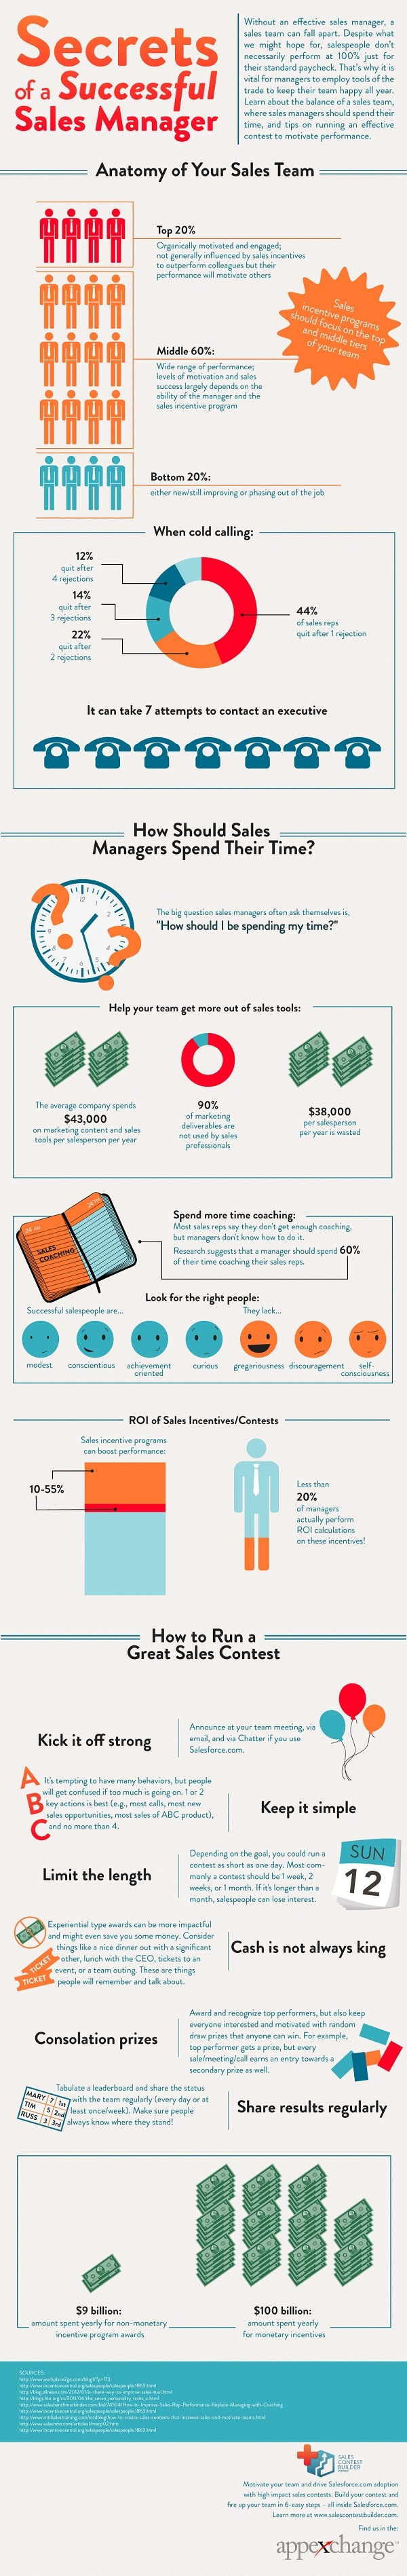 Secrets of Successful Sales Managers [Infographic]